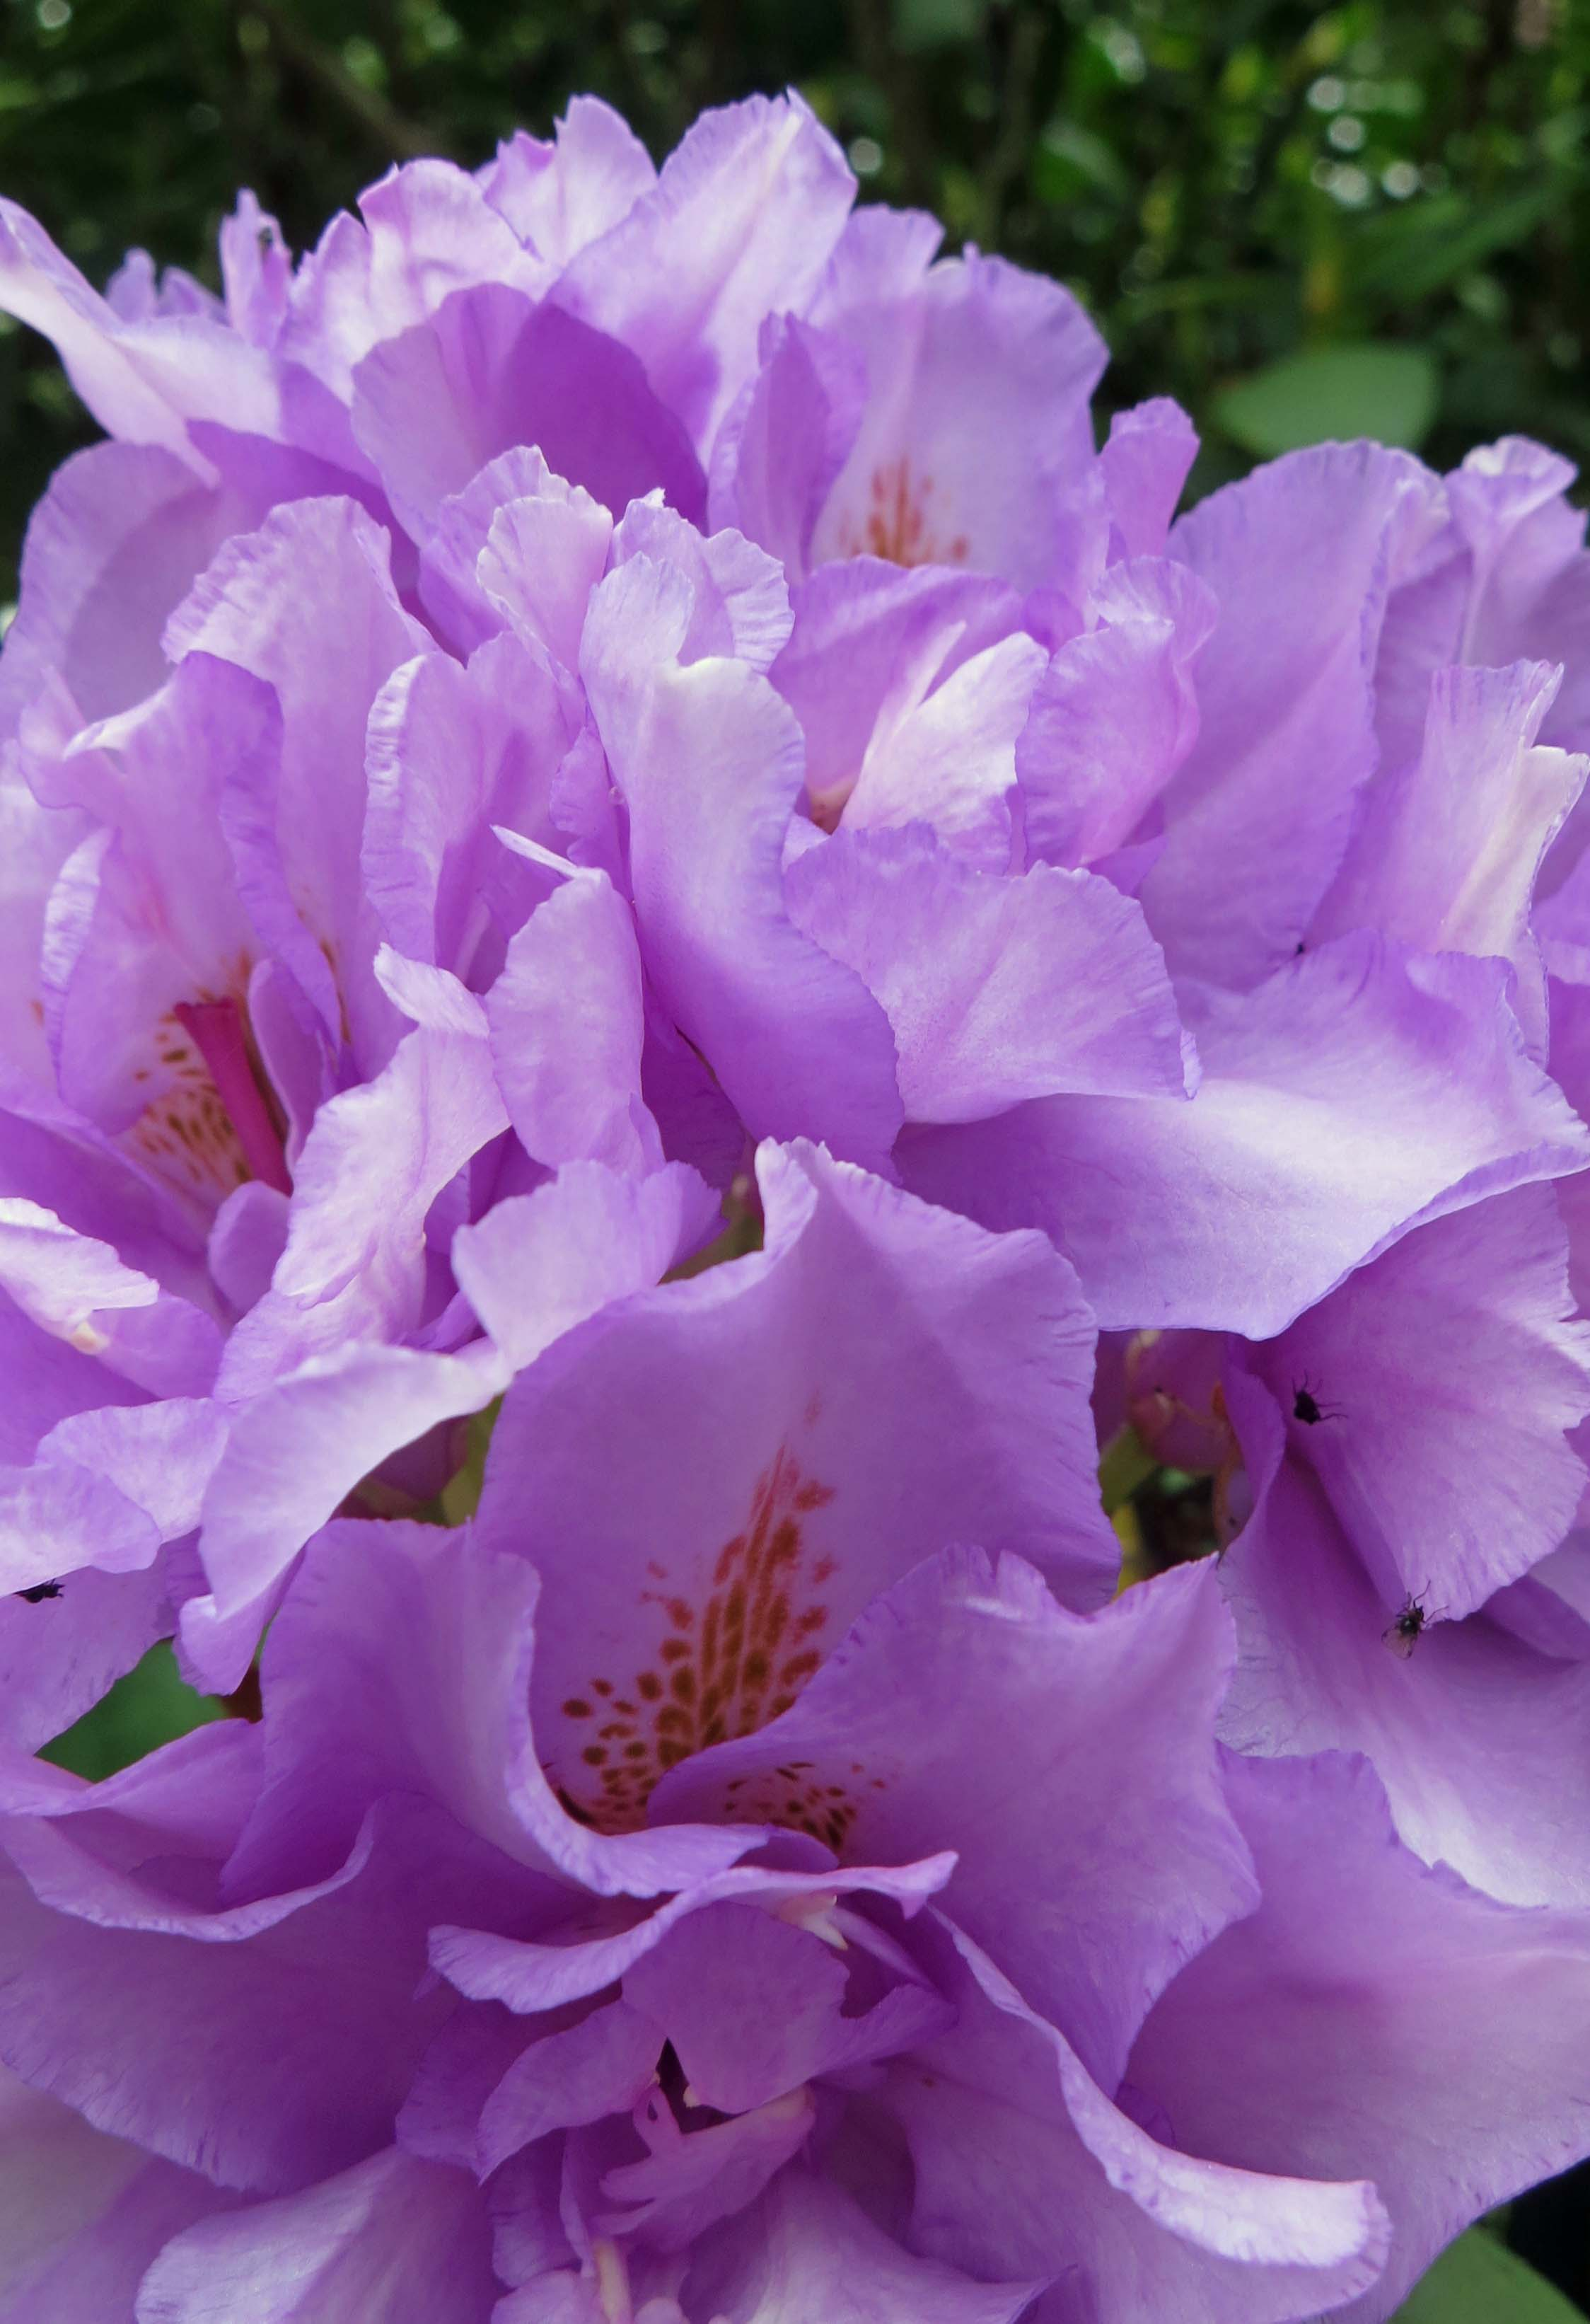 Violet Rhododendrons at Shore Acres State Park in Oregon.